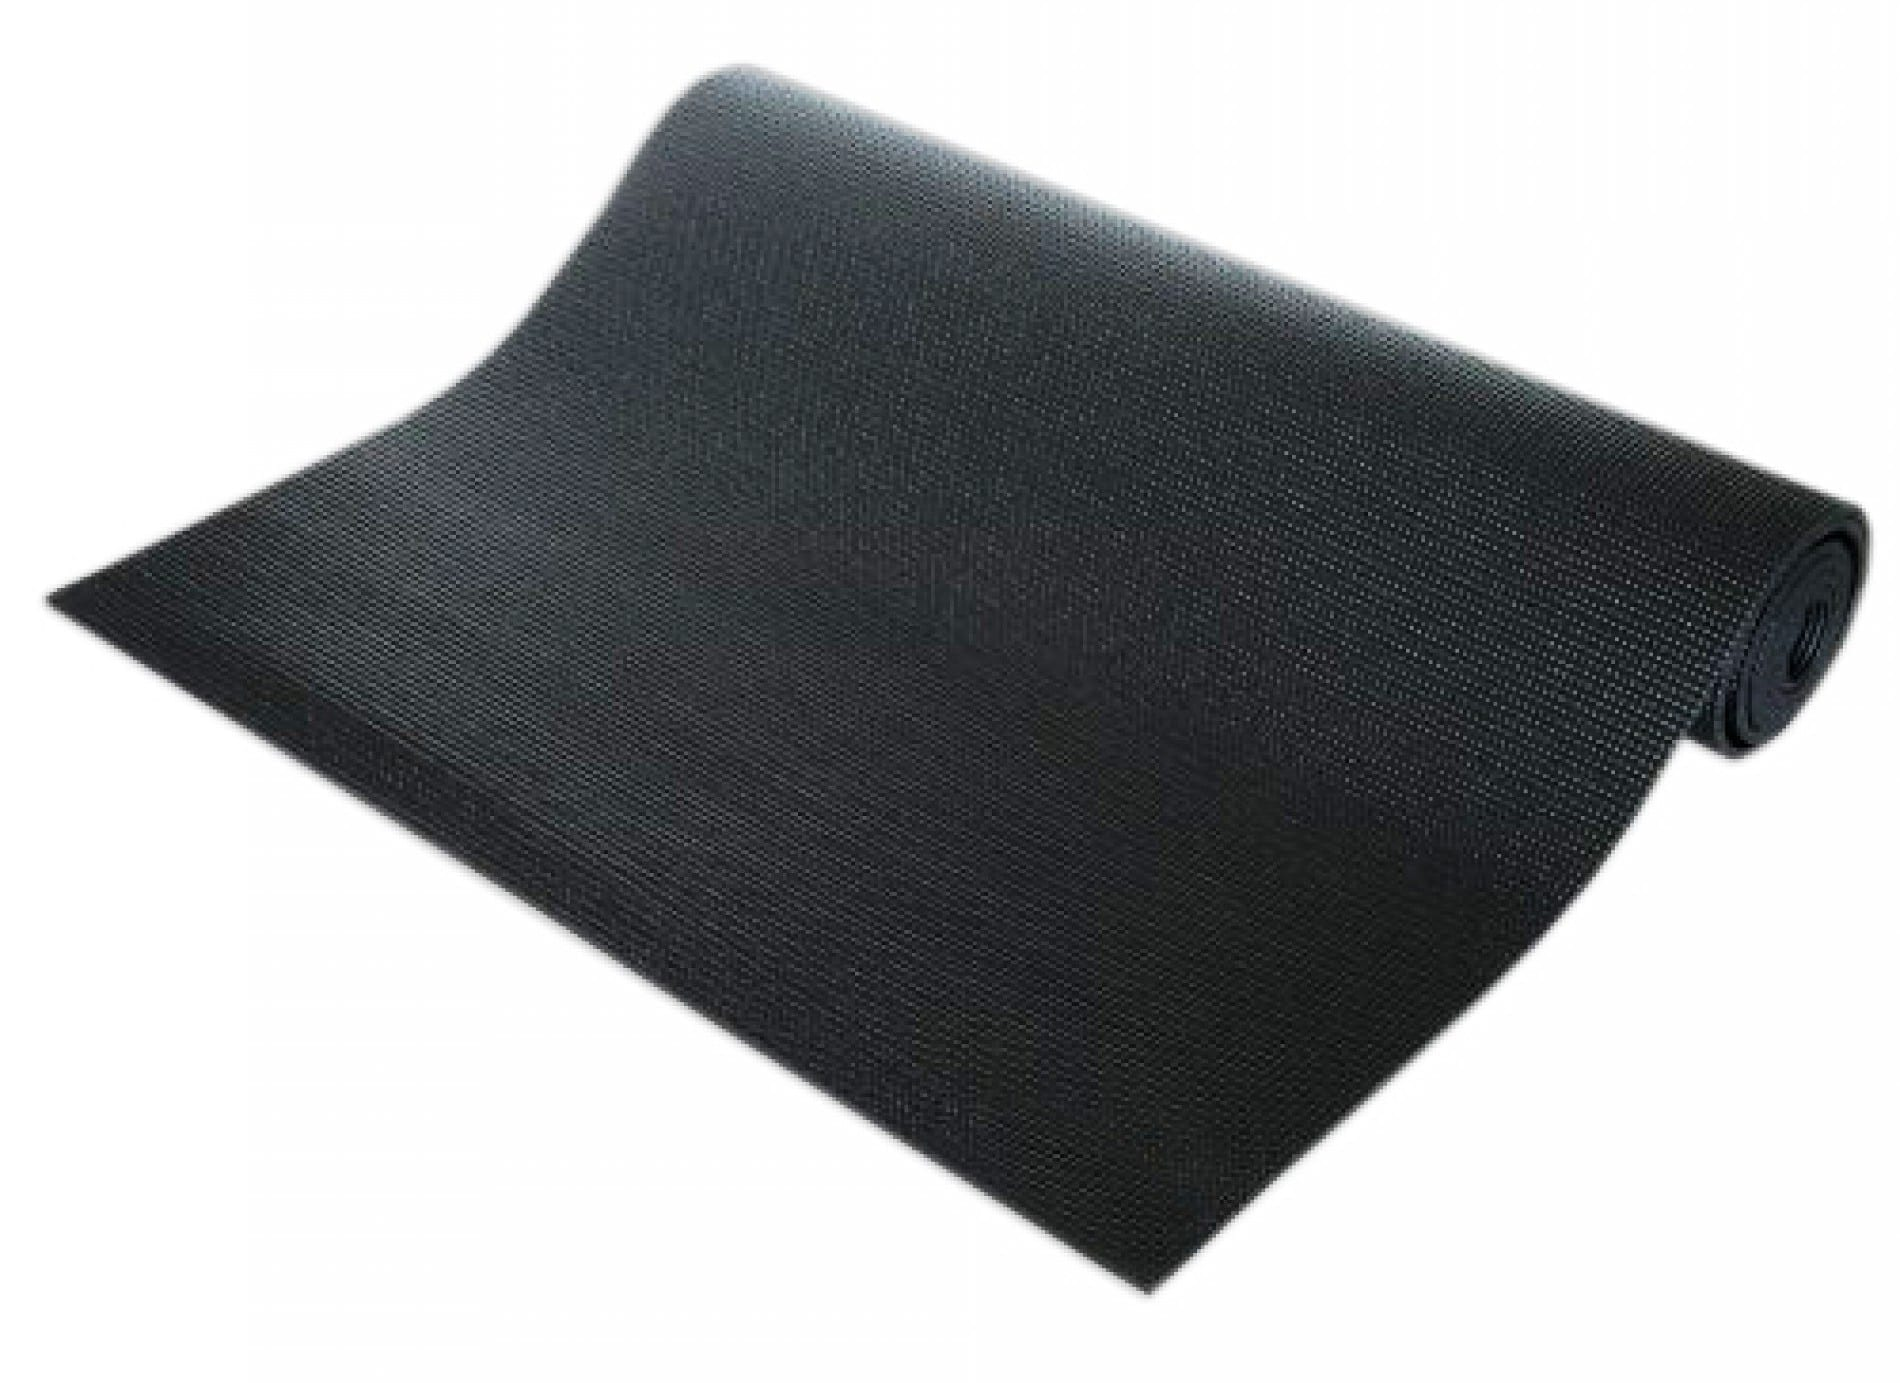 Exercise Mat - Yoga Mat - exercise mattress -6 mm, Black